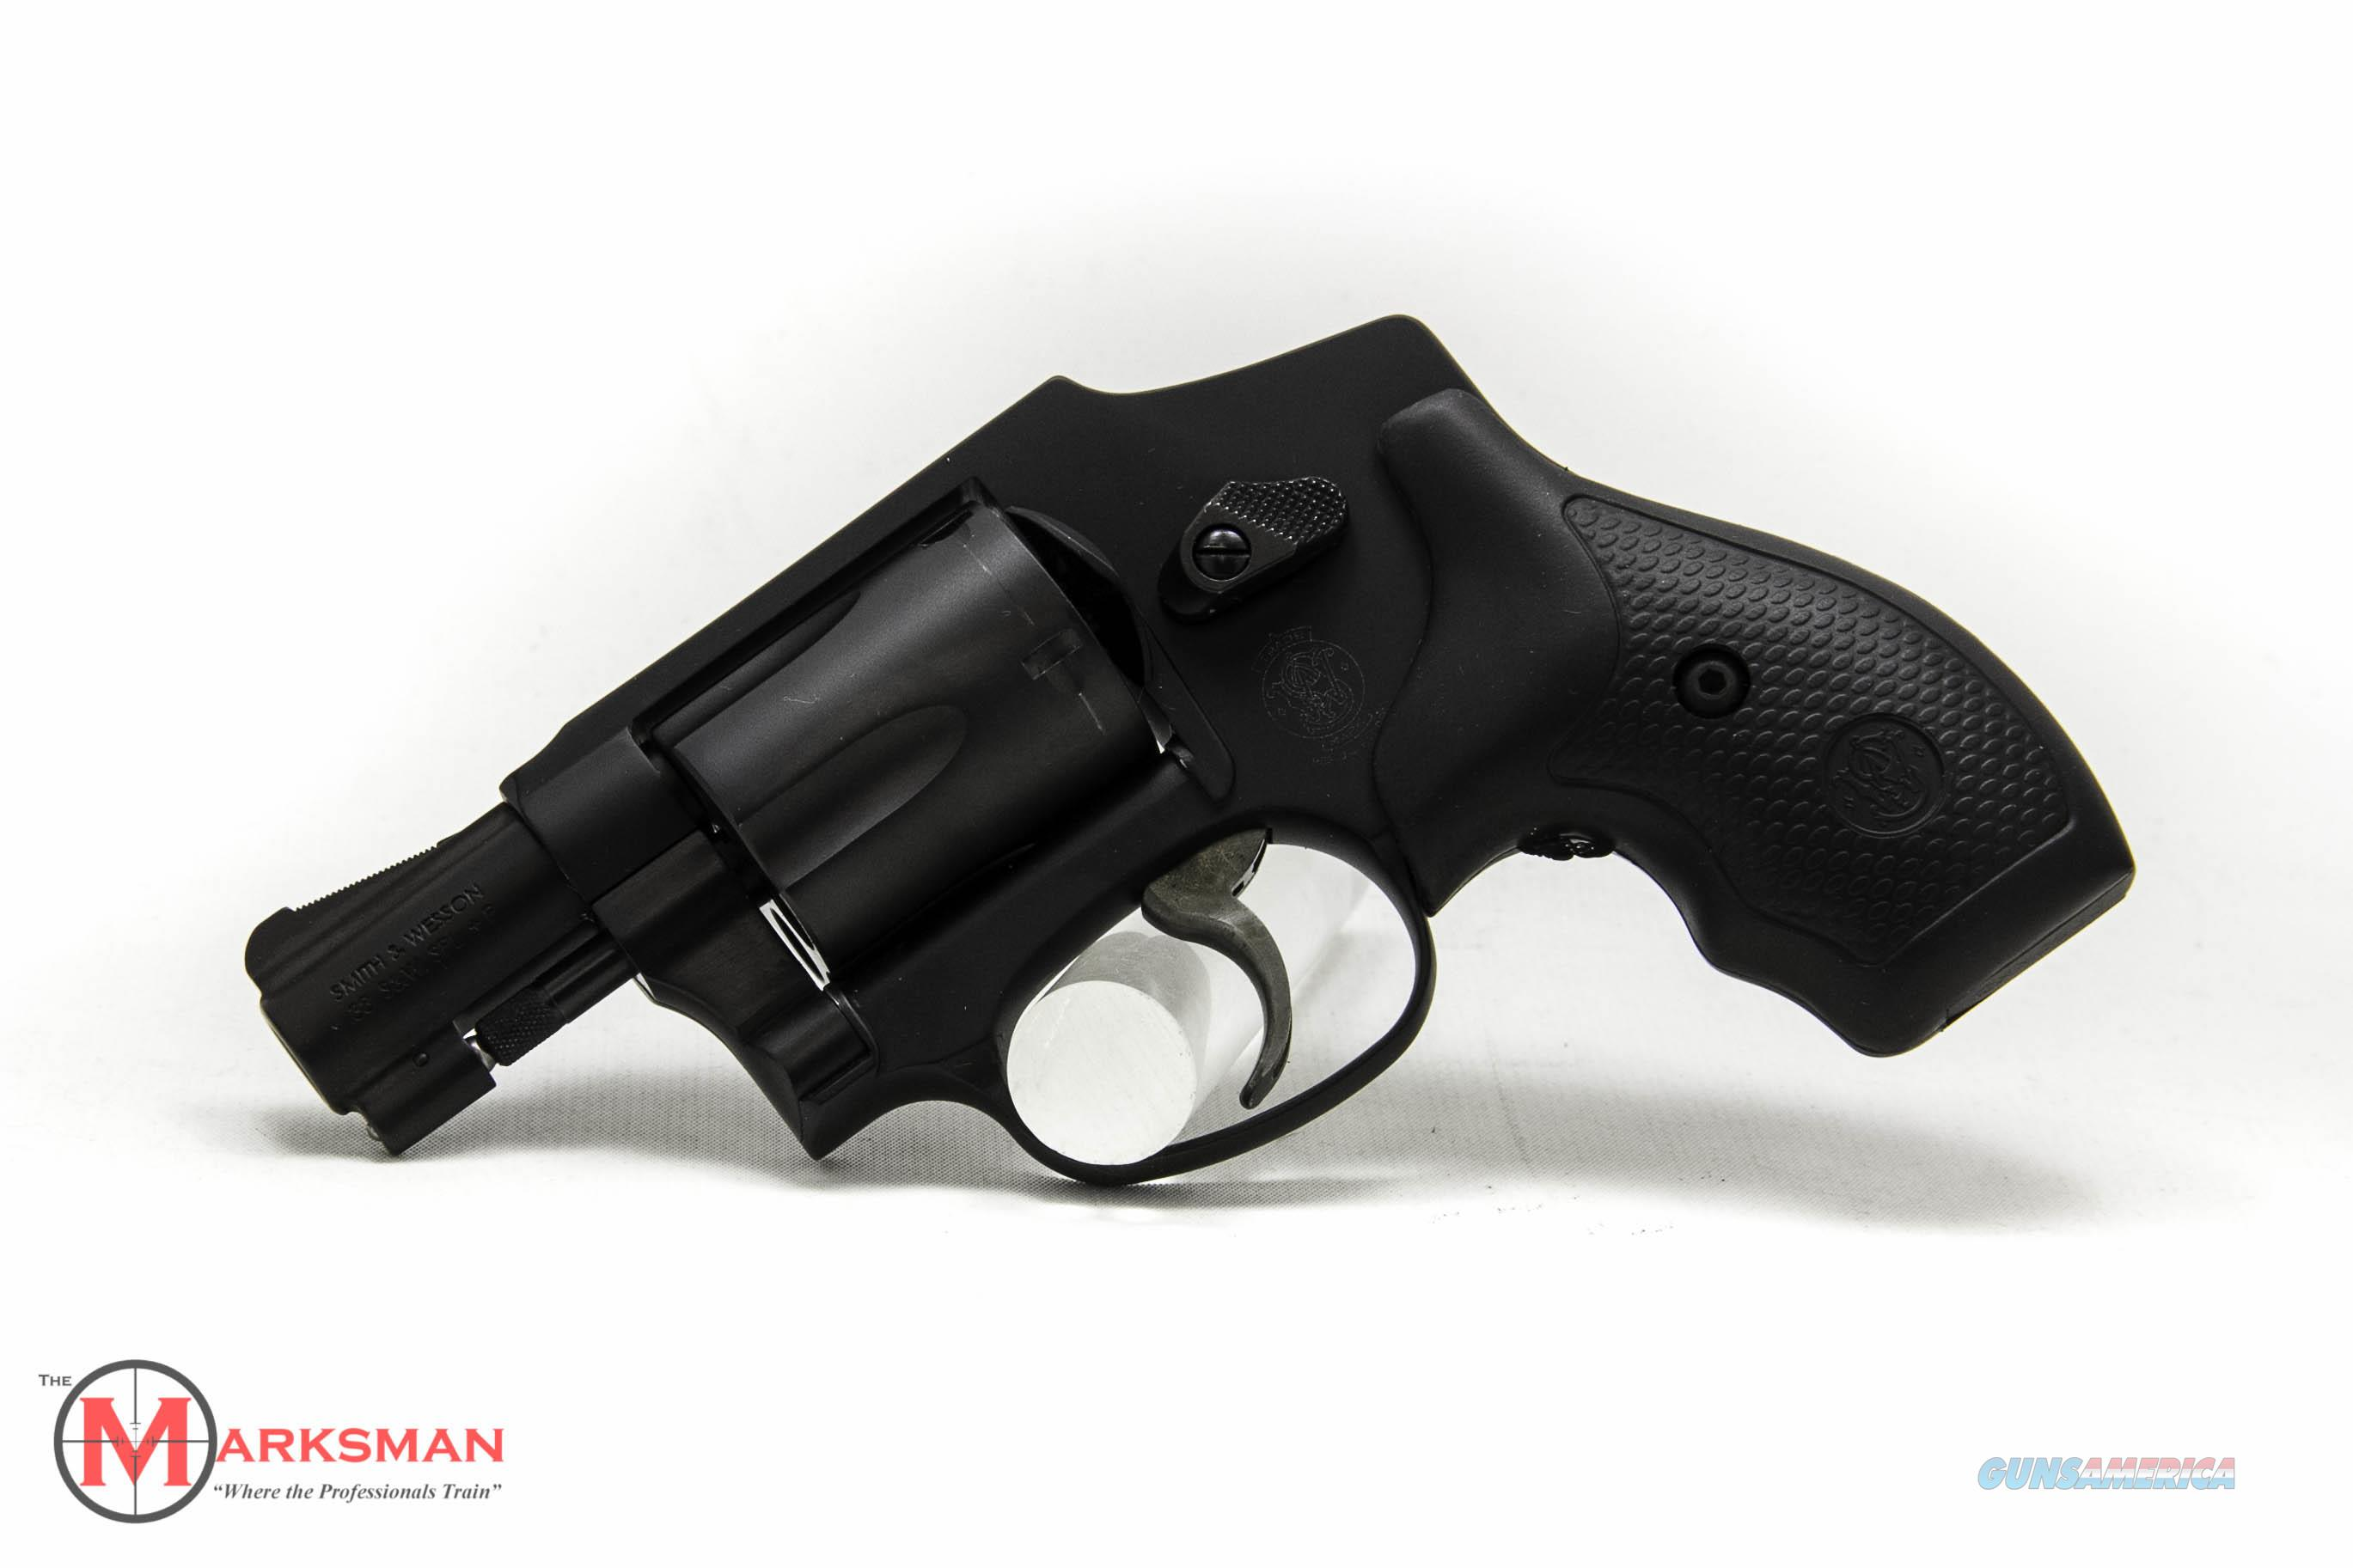 Smith and Wesson Lockless 442 .38 Special +P NEW  Guns > Pistols > Smith & Wesson Revolvers > Pocket Pistols